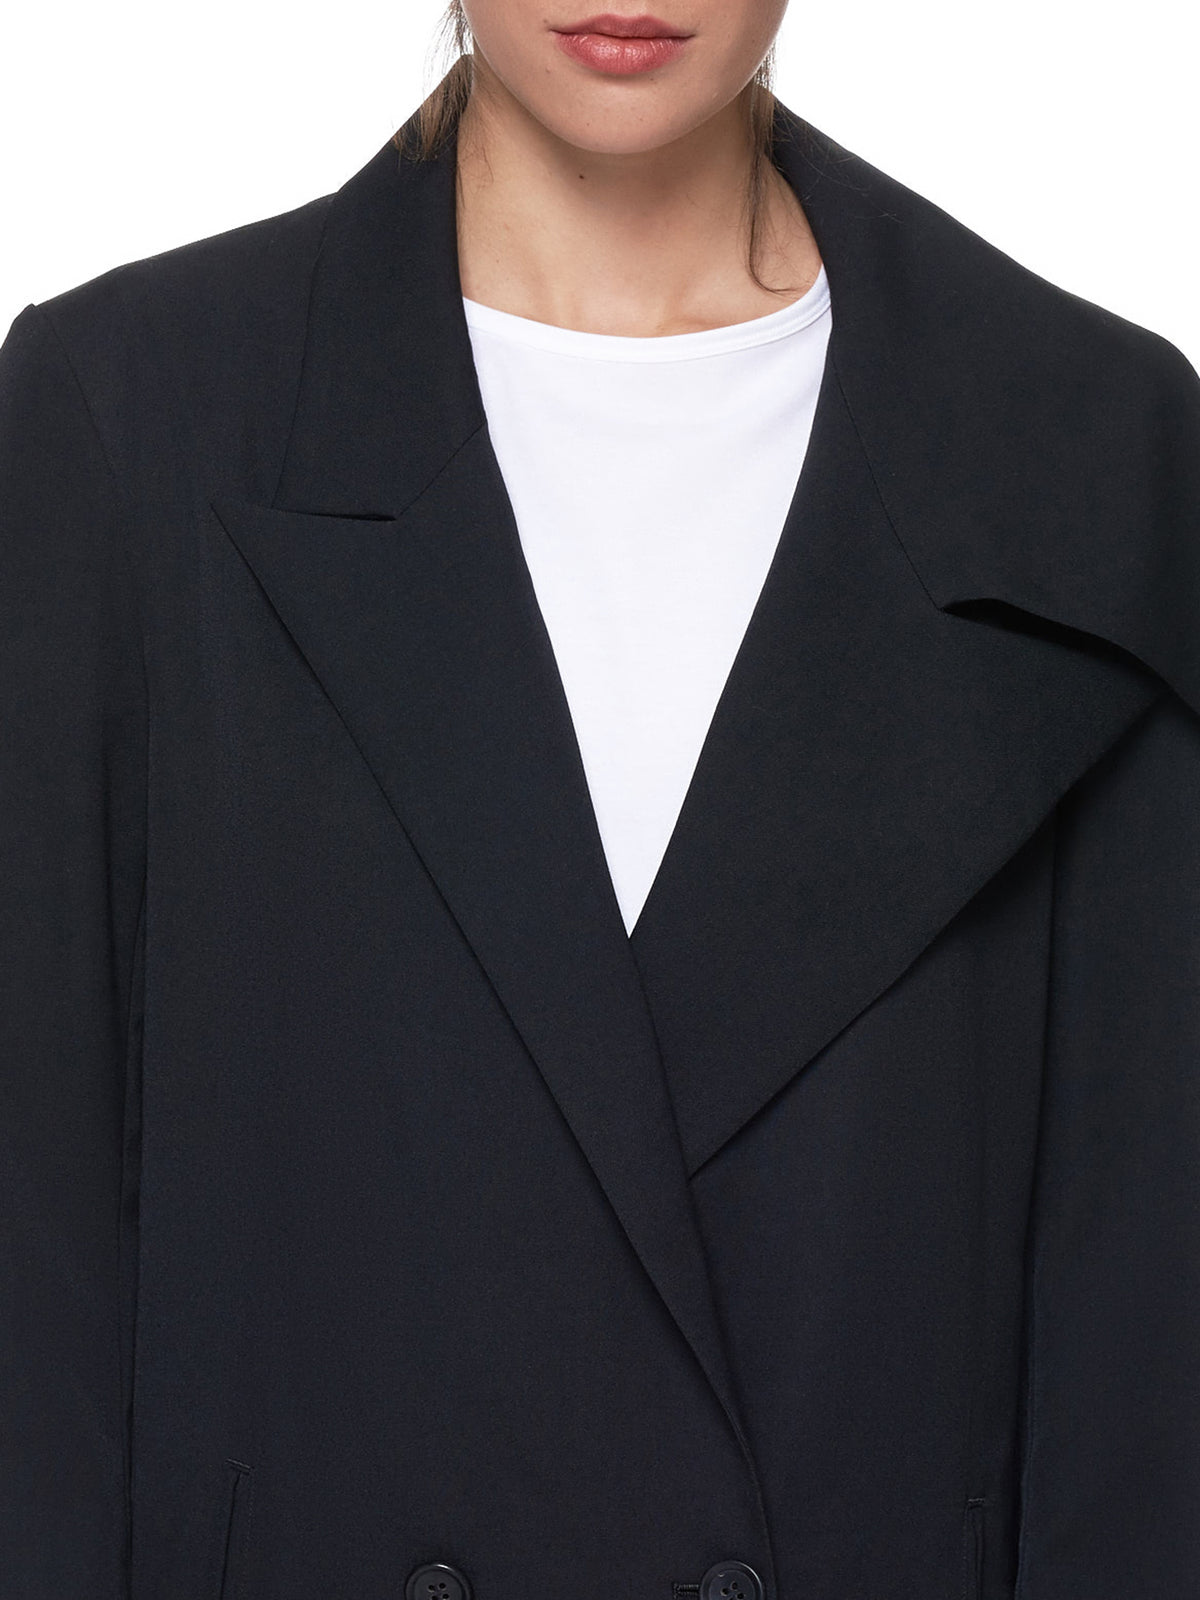 Maxi Over-Coat (FH-C02-100-BLACK)